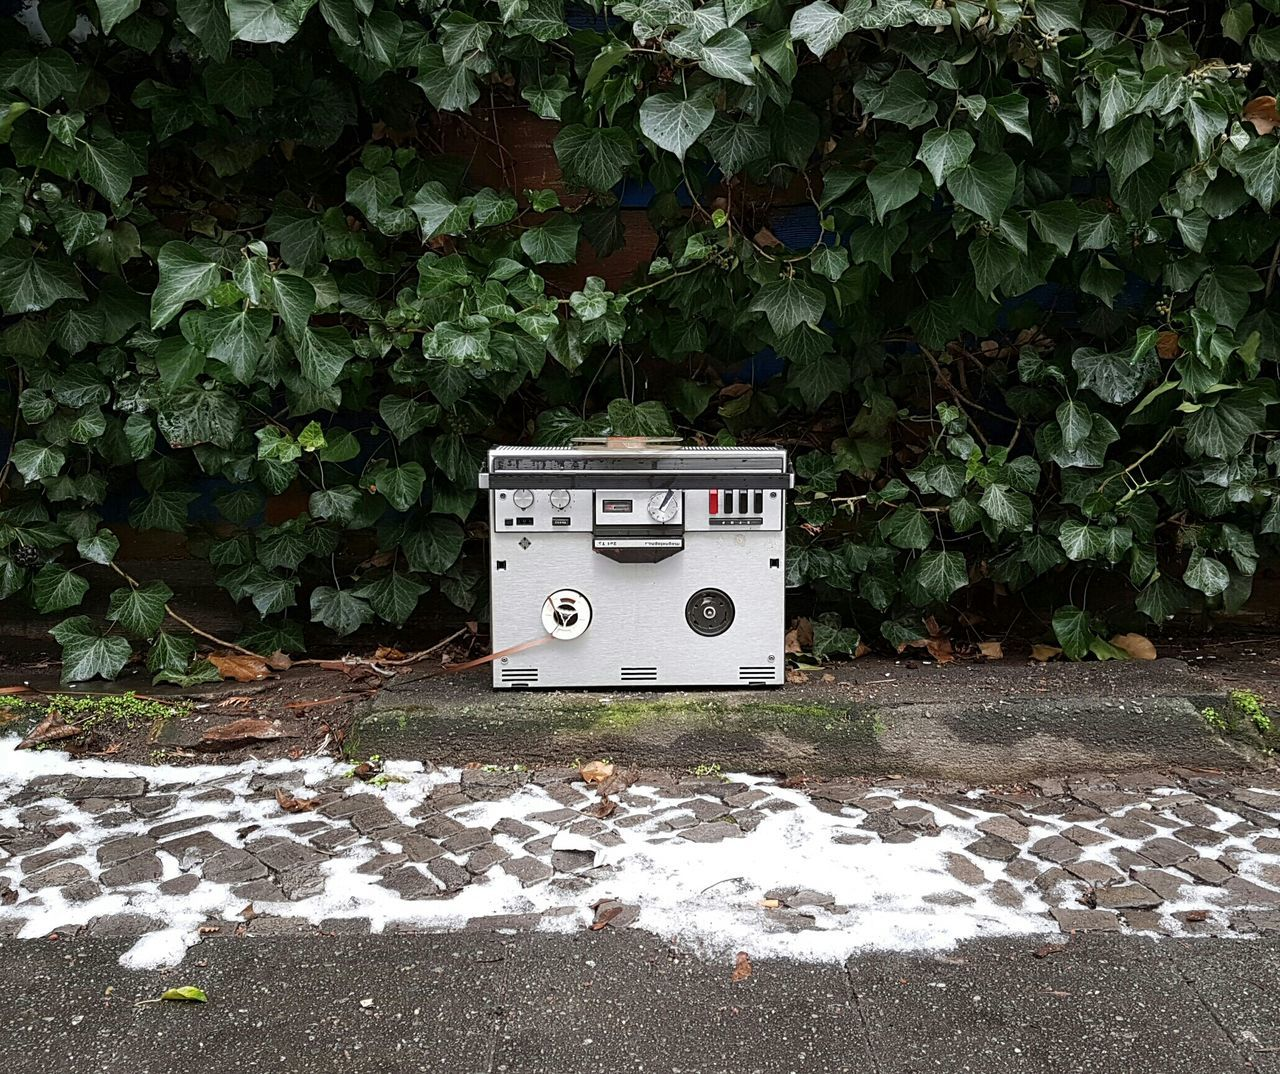 Cover Background Music Musical Equipment Music Equipment Found Object Found Old Musical Instrument Tape Recorder Tape Cassette Old Tape Music Tape Vintage Records & Tapes Street Found Streetphoto Recycling Music Industry Plant Wall Green Wall Green Plant Wall